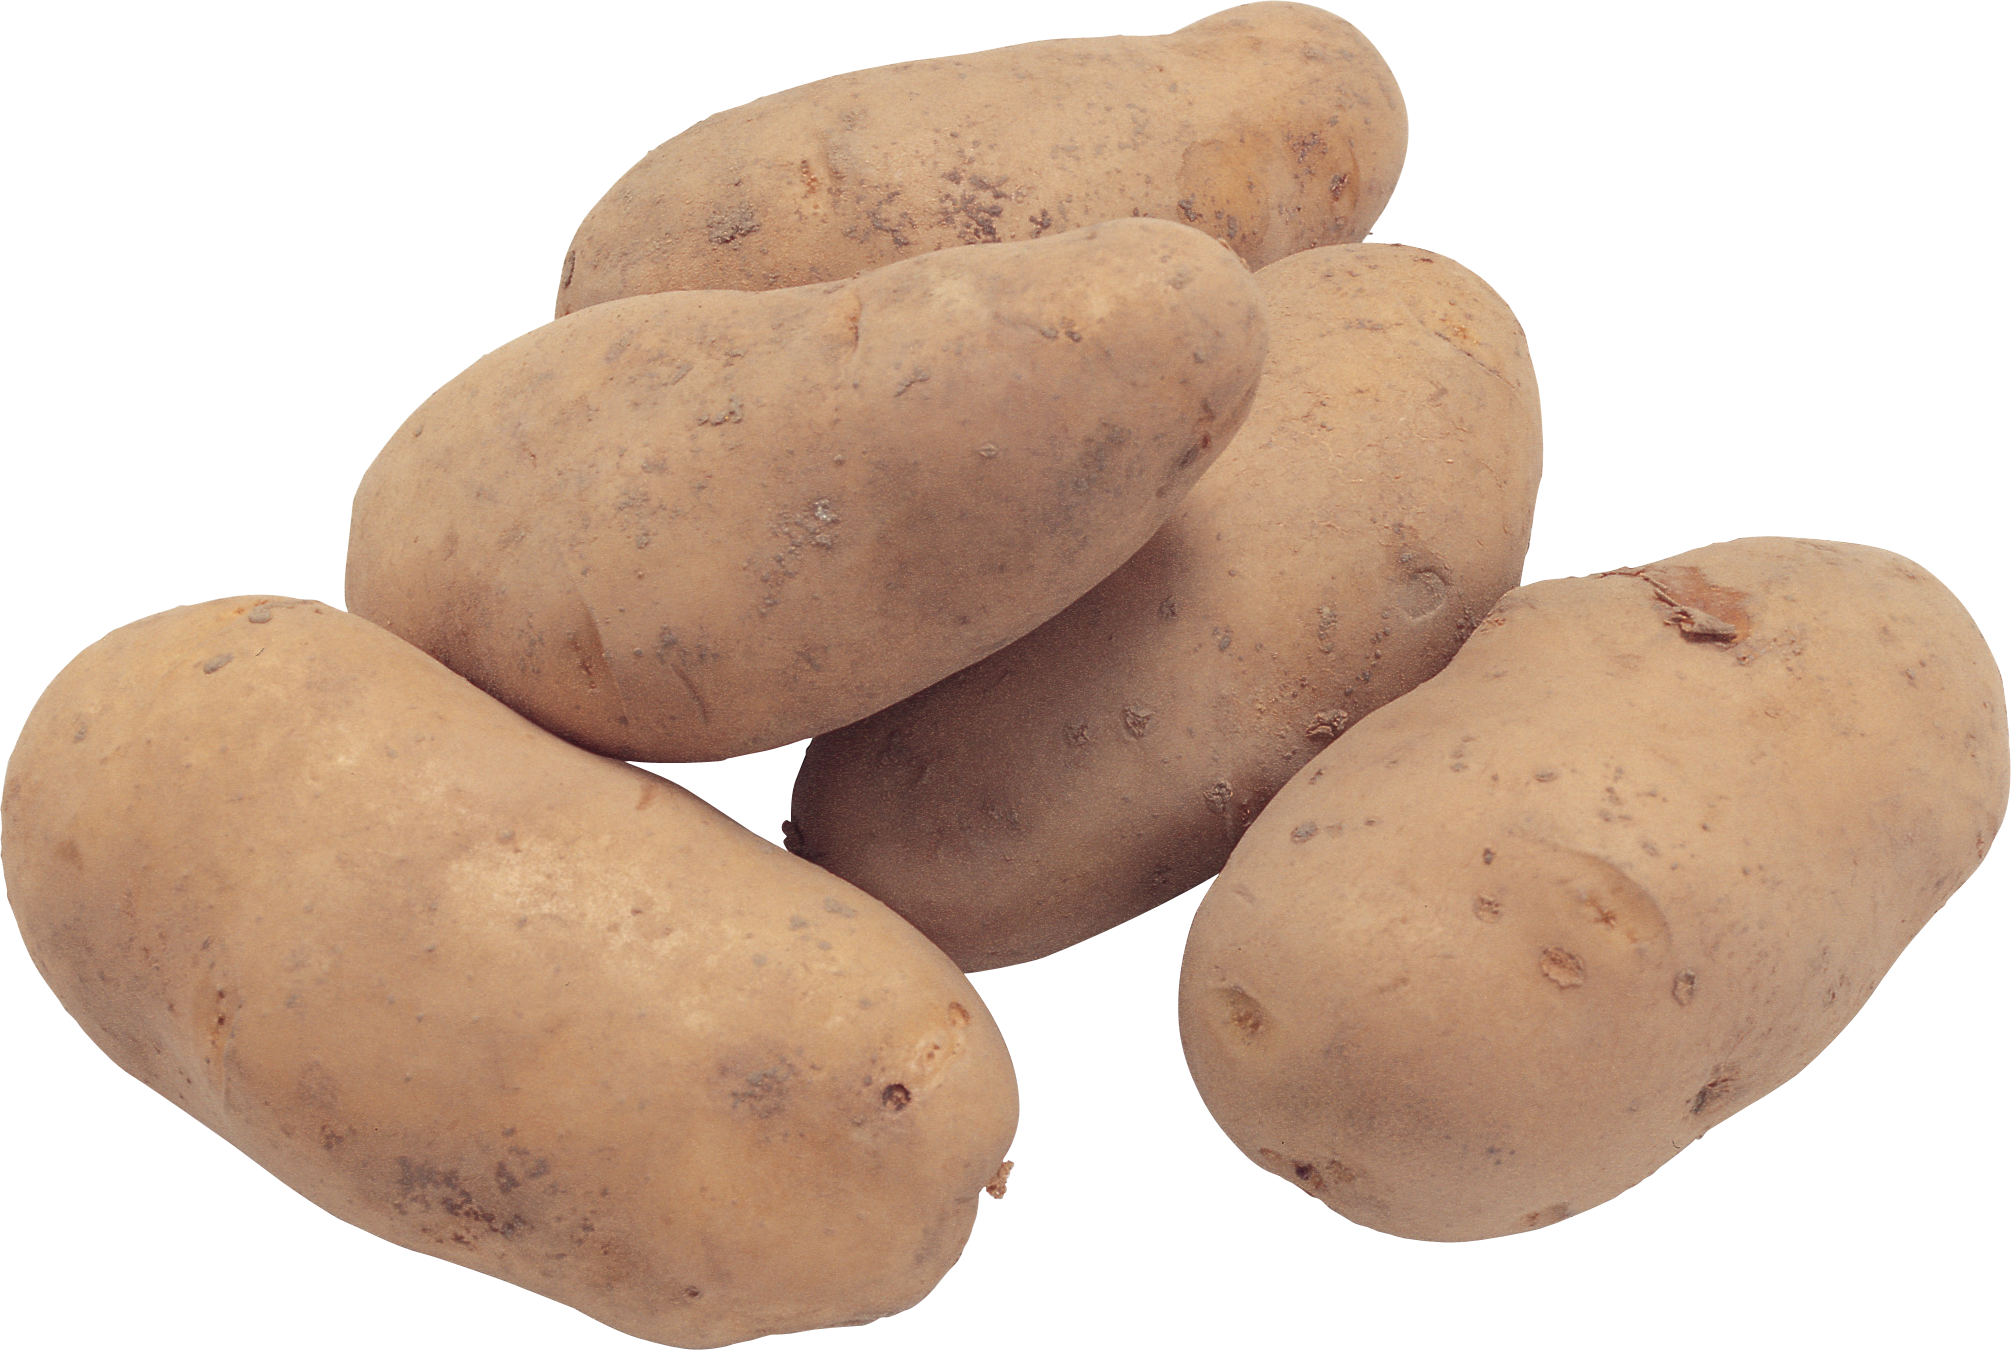 Potato clipart potato food. Png image without background